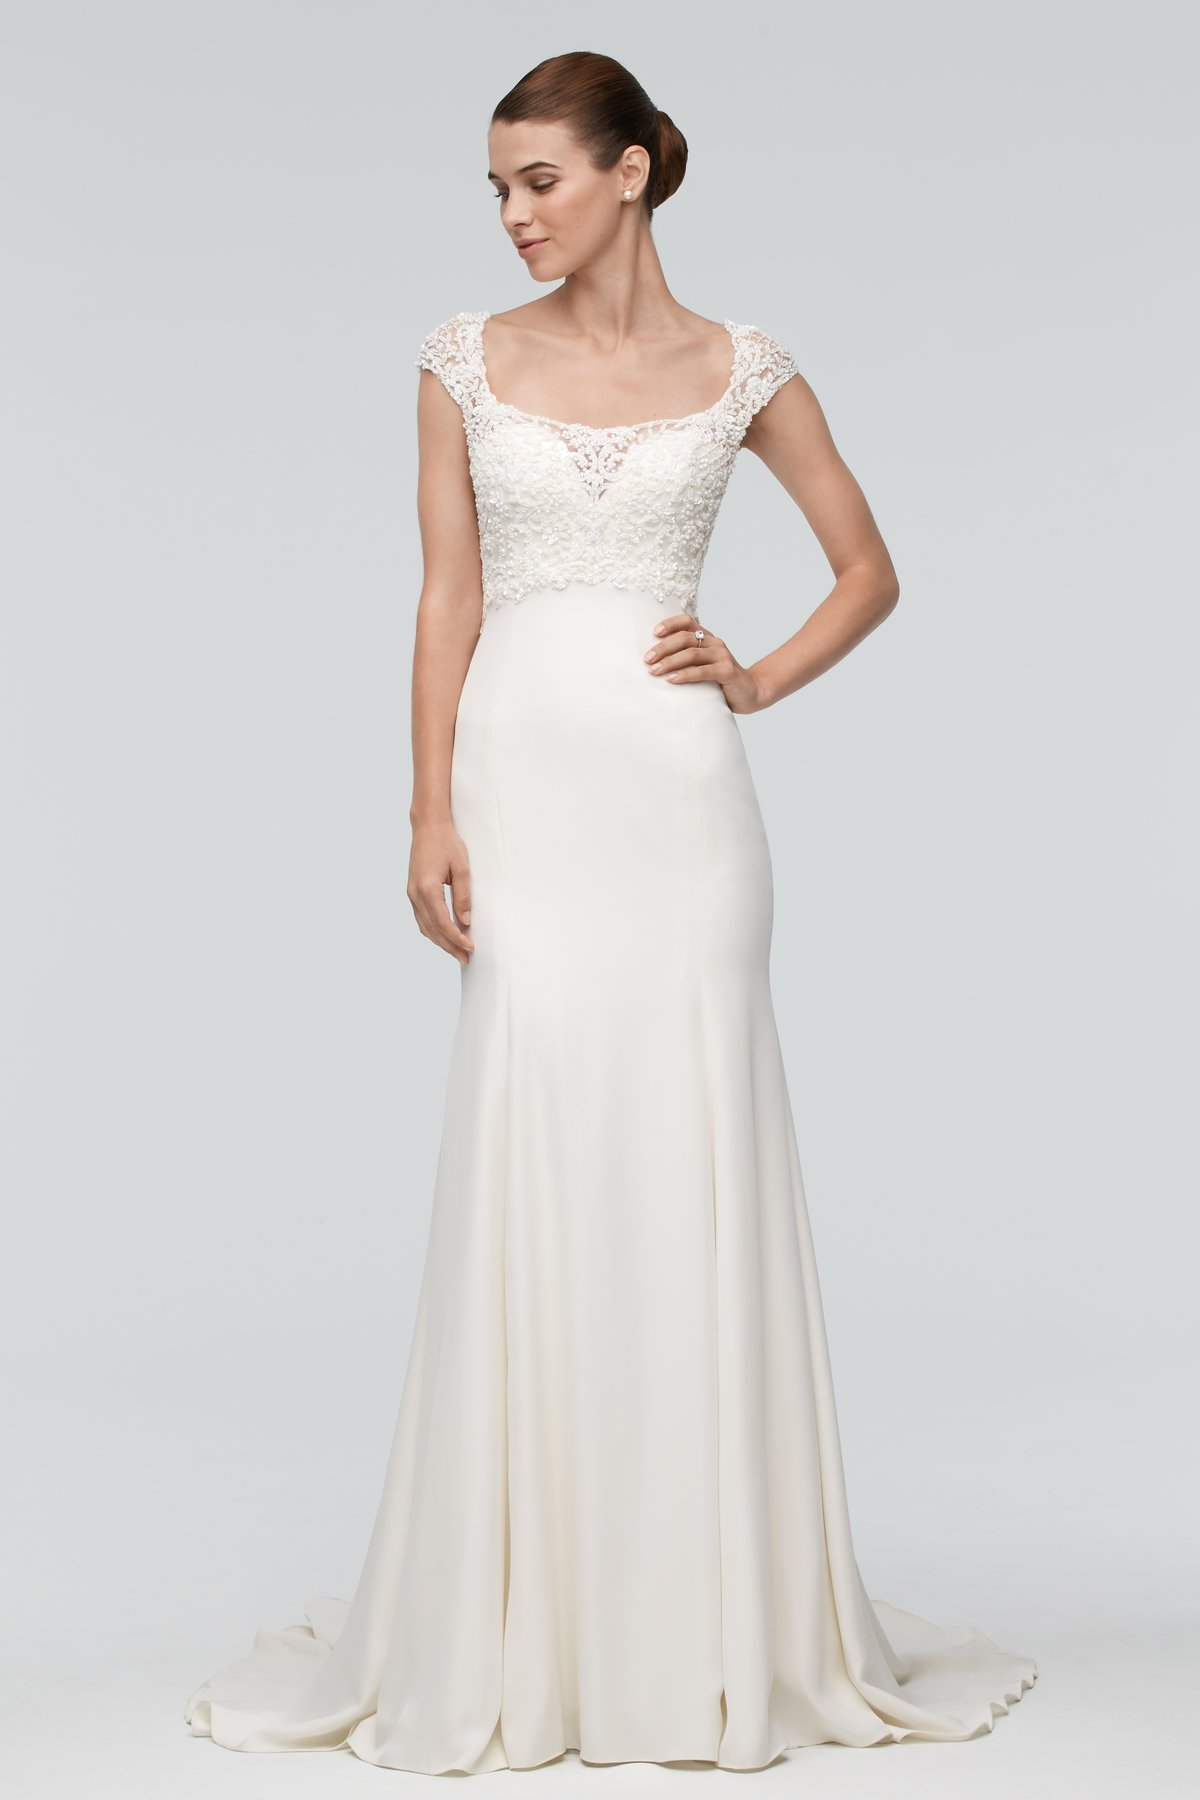 Lace Boatneck Wedding Dress | Bycouturier